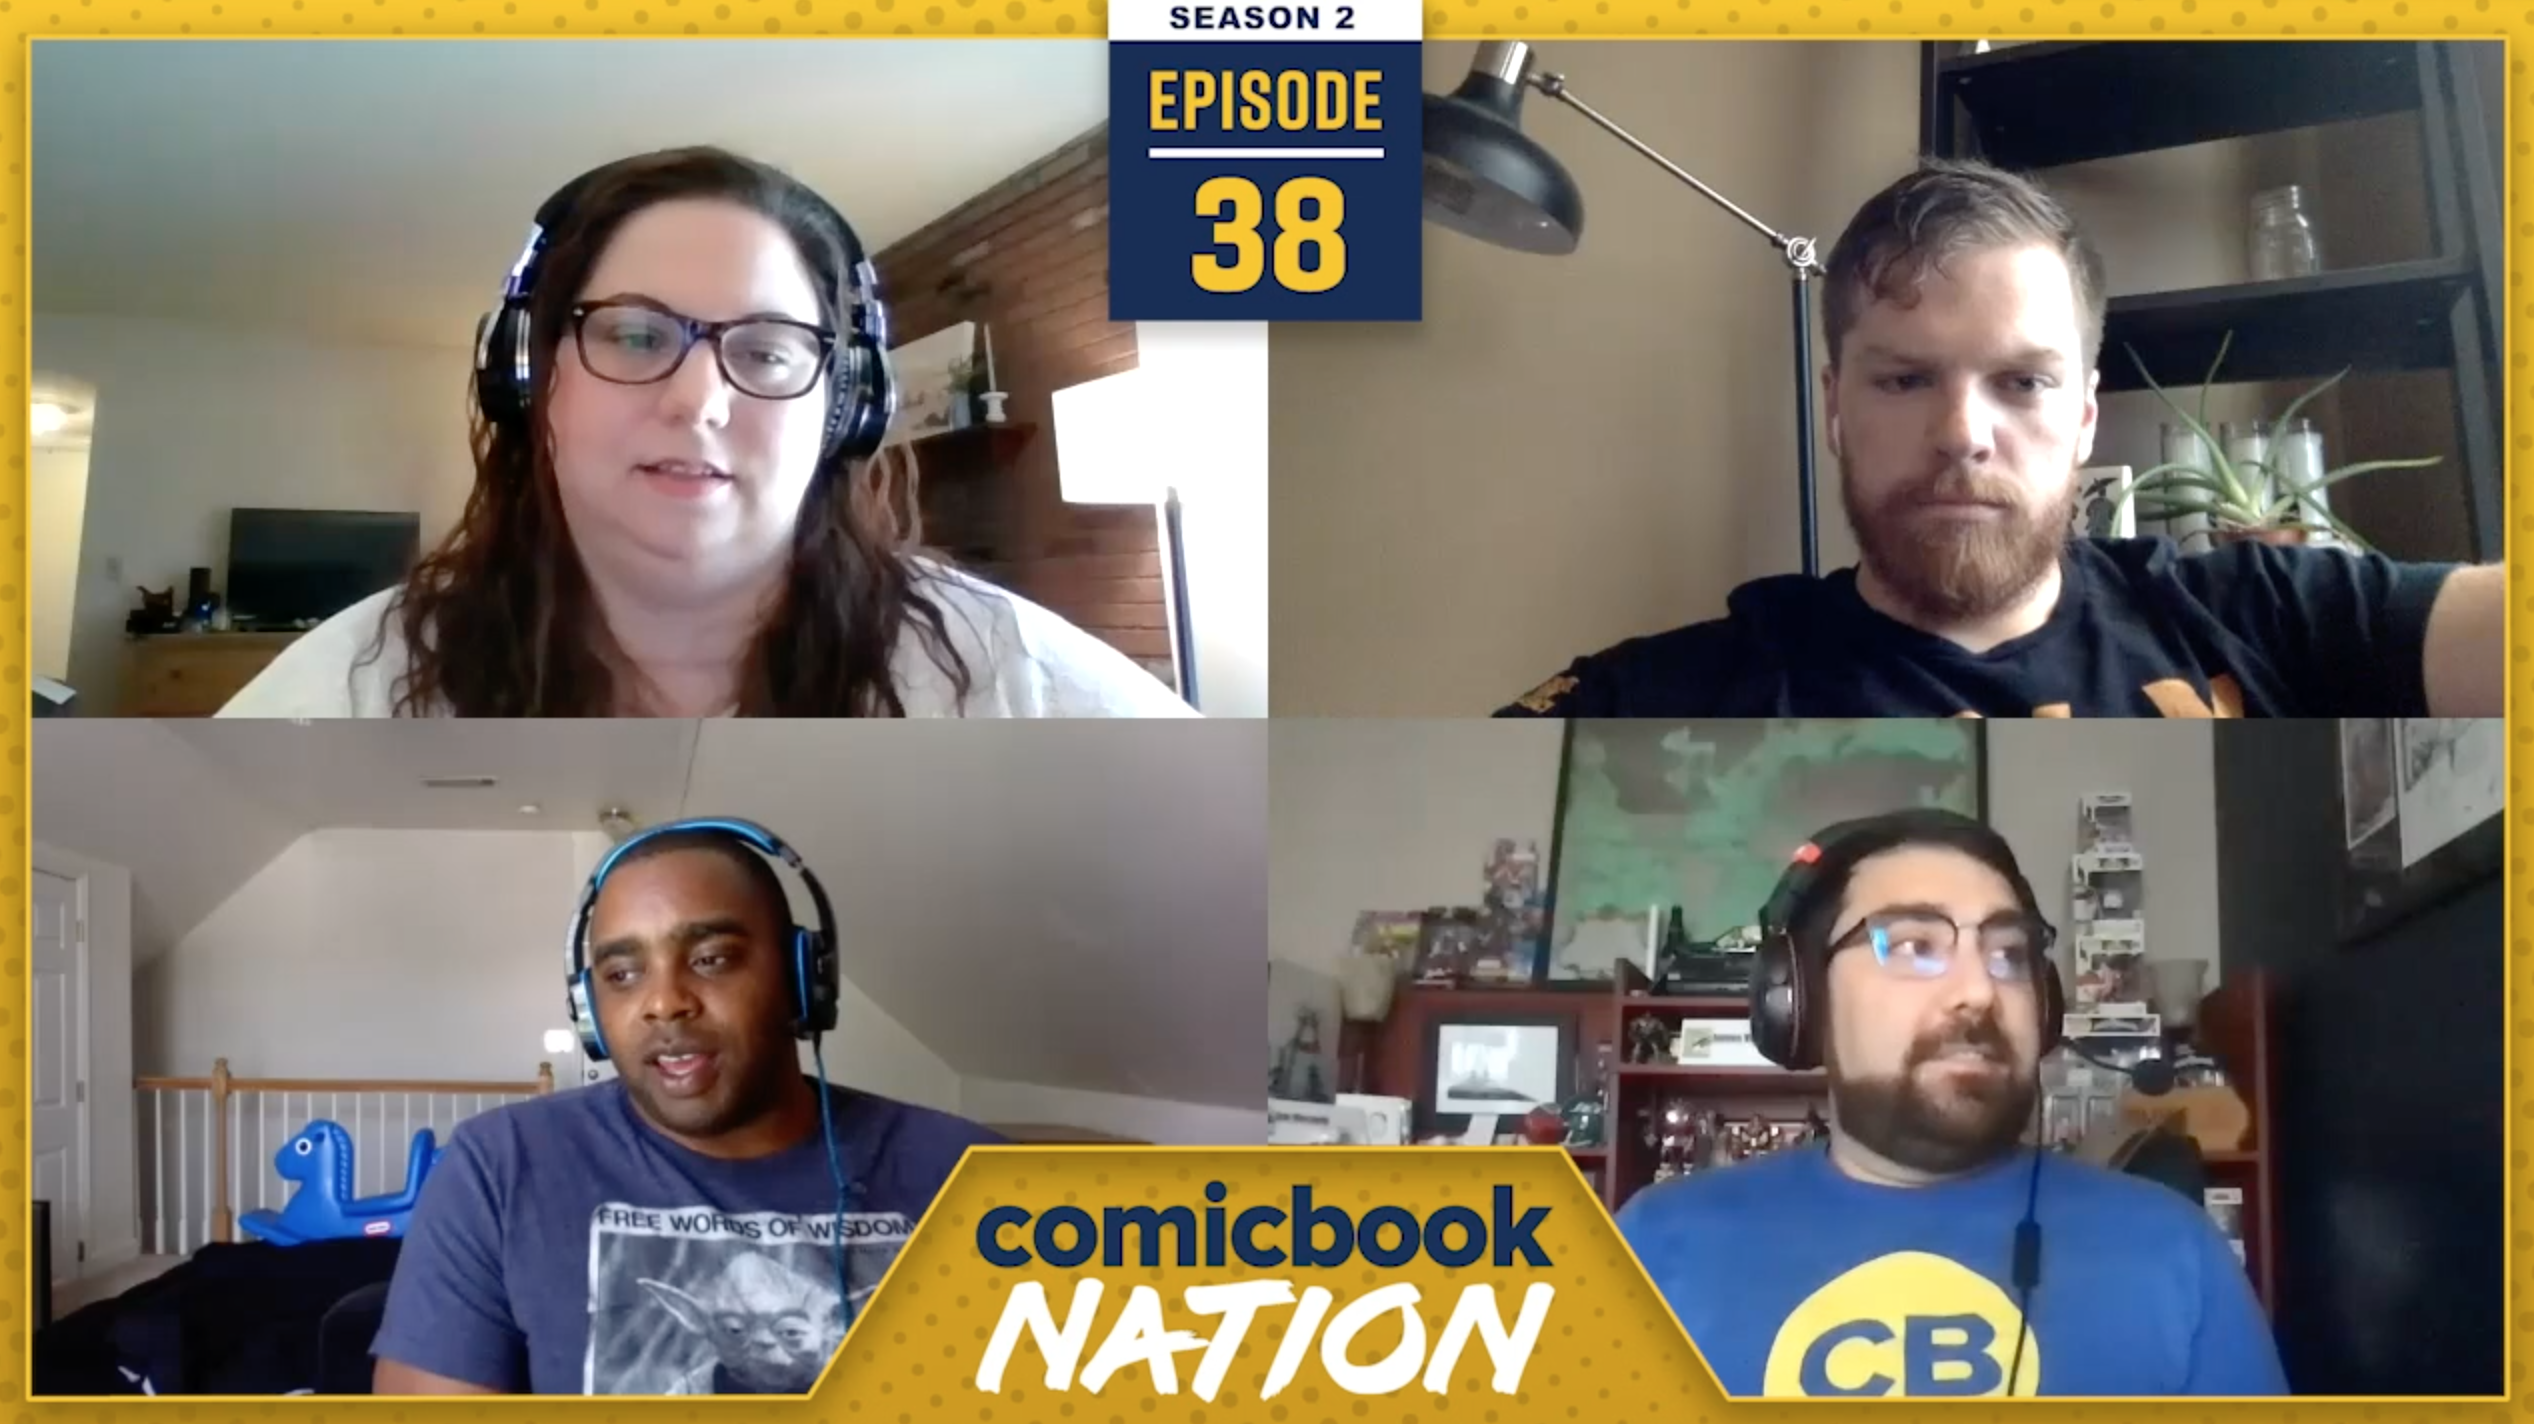 Comicbook Nation Season 2 Ep. 38- Warner Brothers Is Rumored to Have a Bane Movie Planned